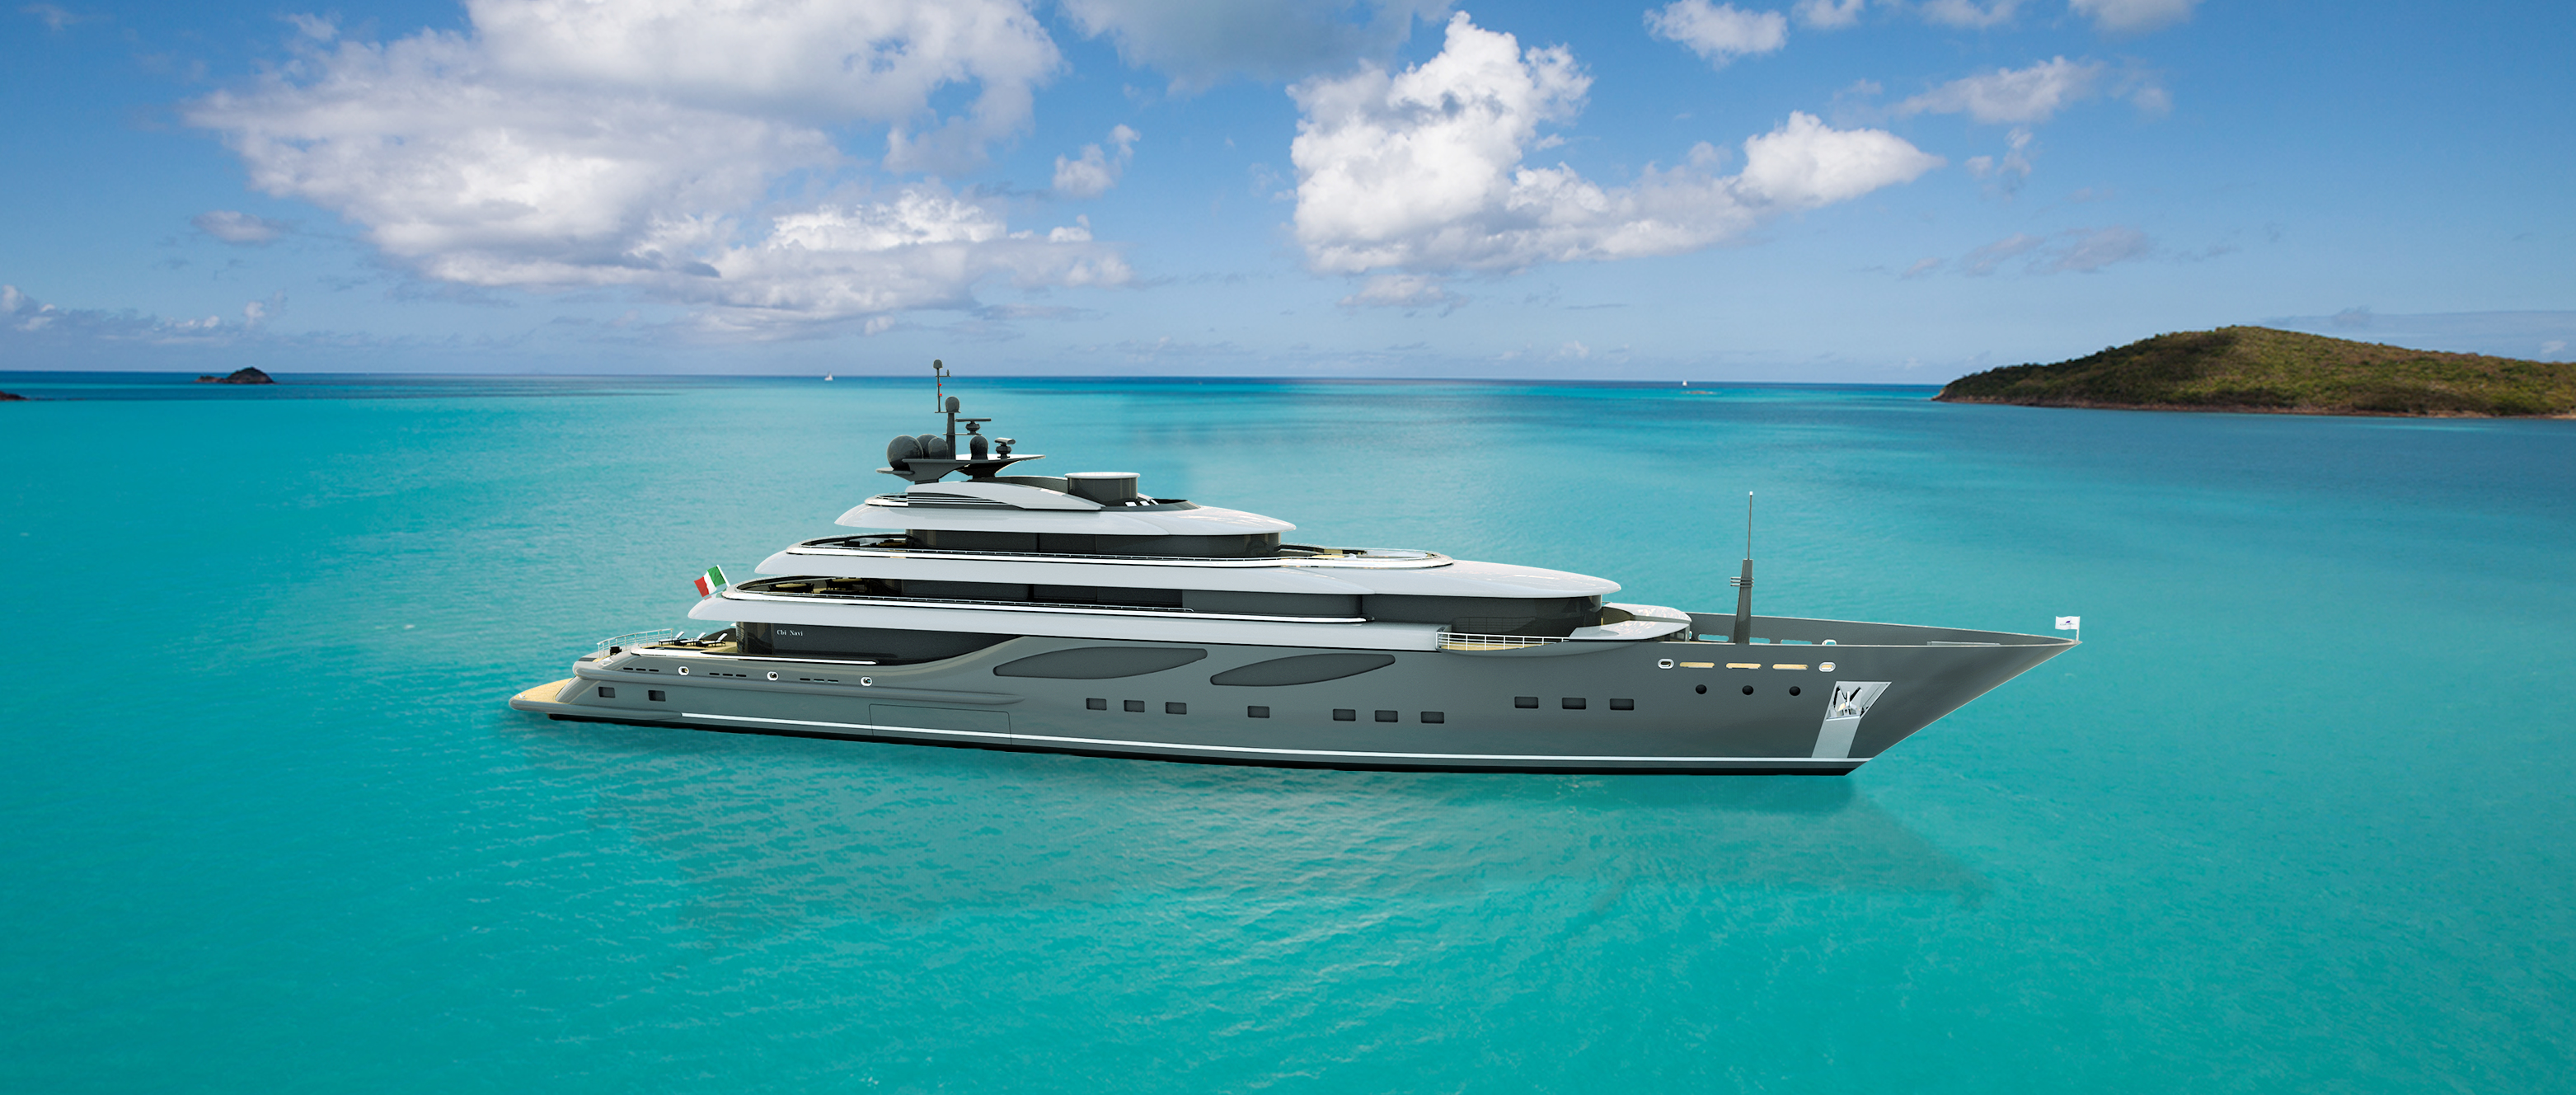 The Cbi 100 megayacht - A 100m superyacht project by Cbi Navi � Fipa Group.